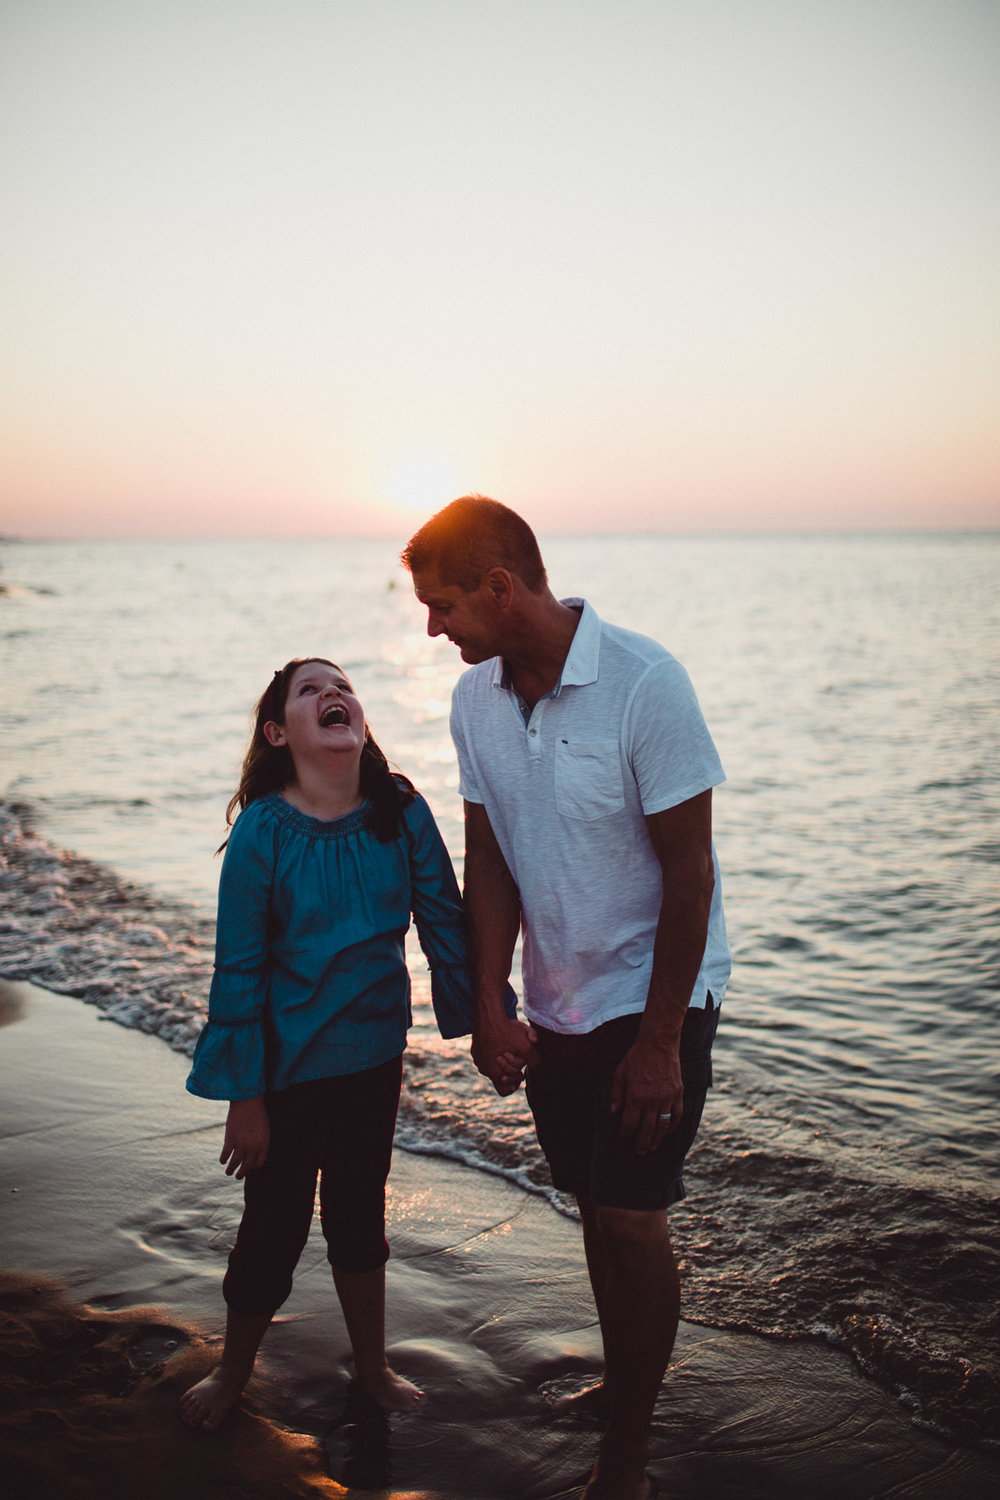 daughter laughing with her father on the beach